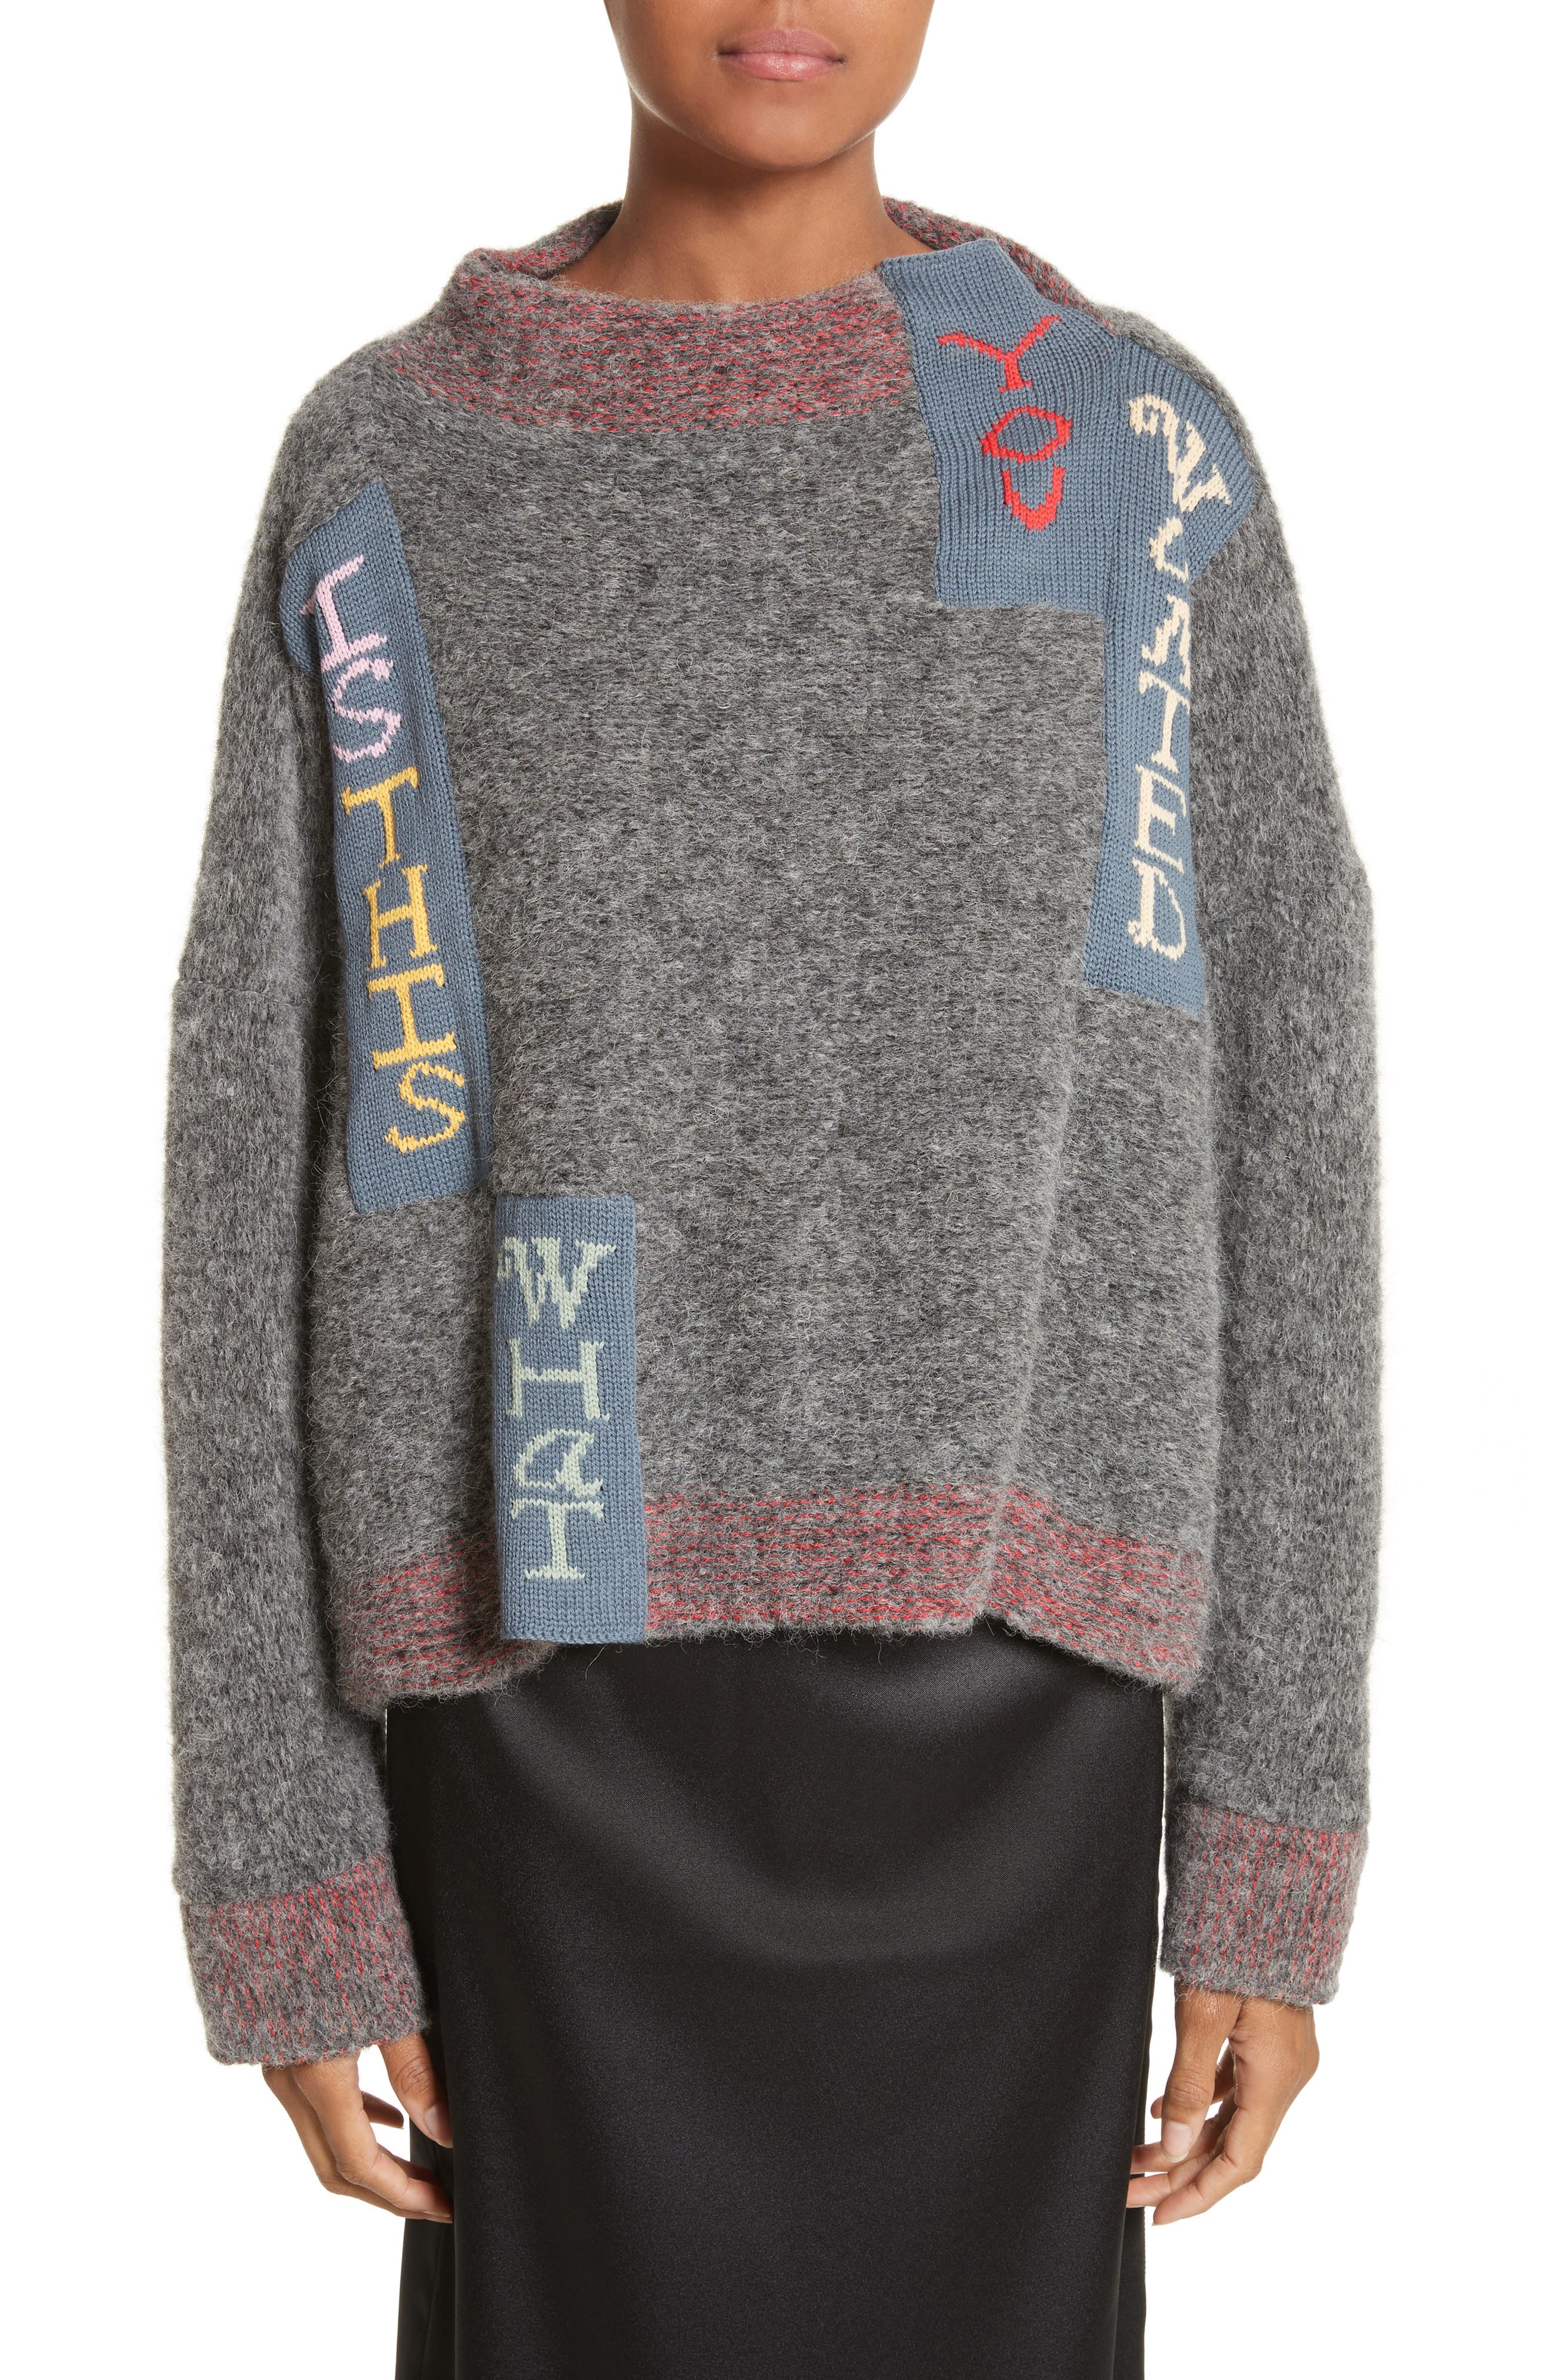 Main Image - Eckhaus Latta Is This What You Wanted Crop Sweater